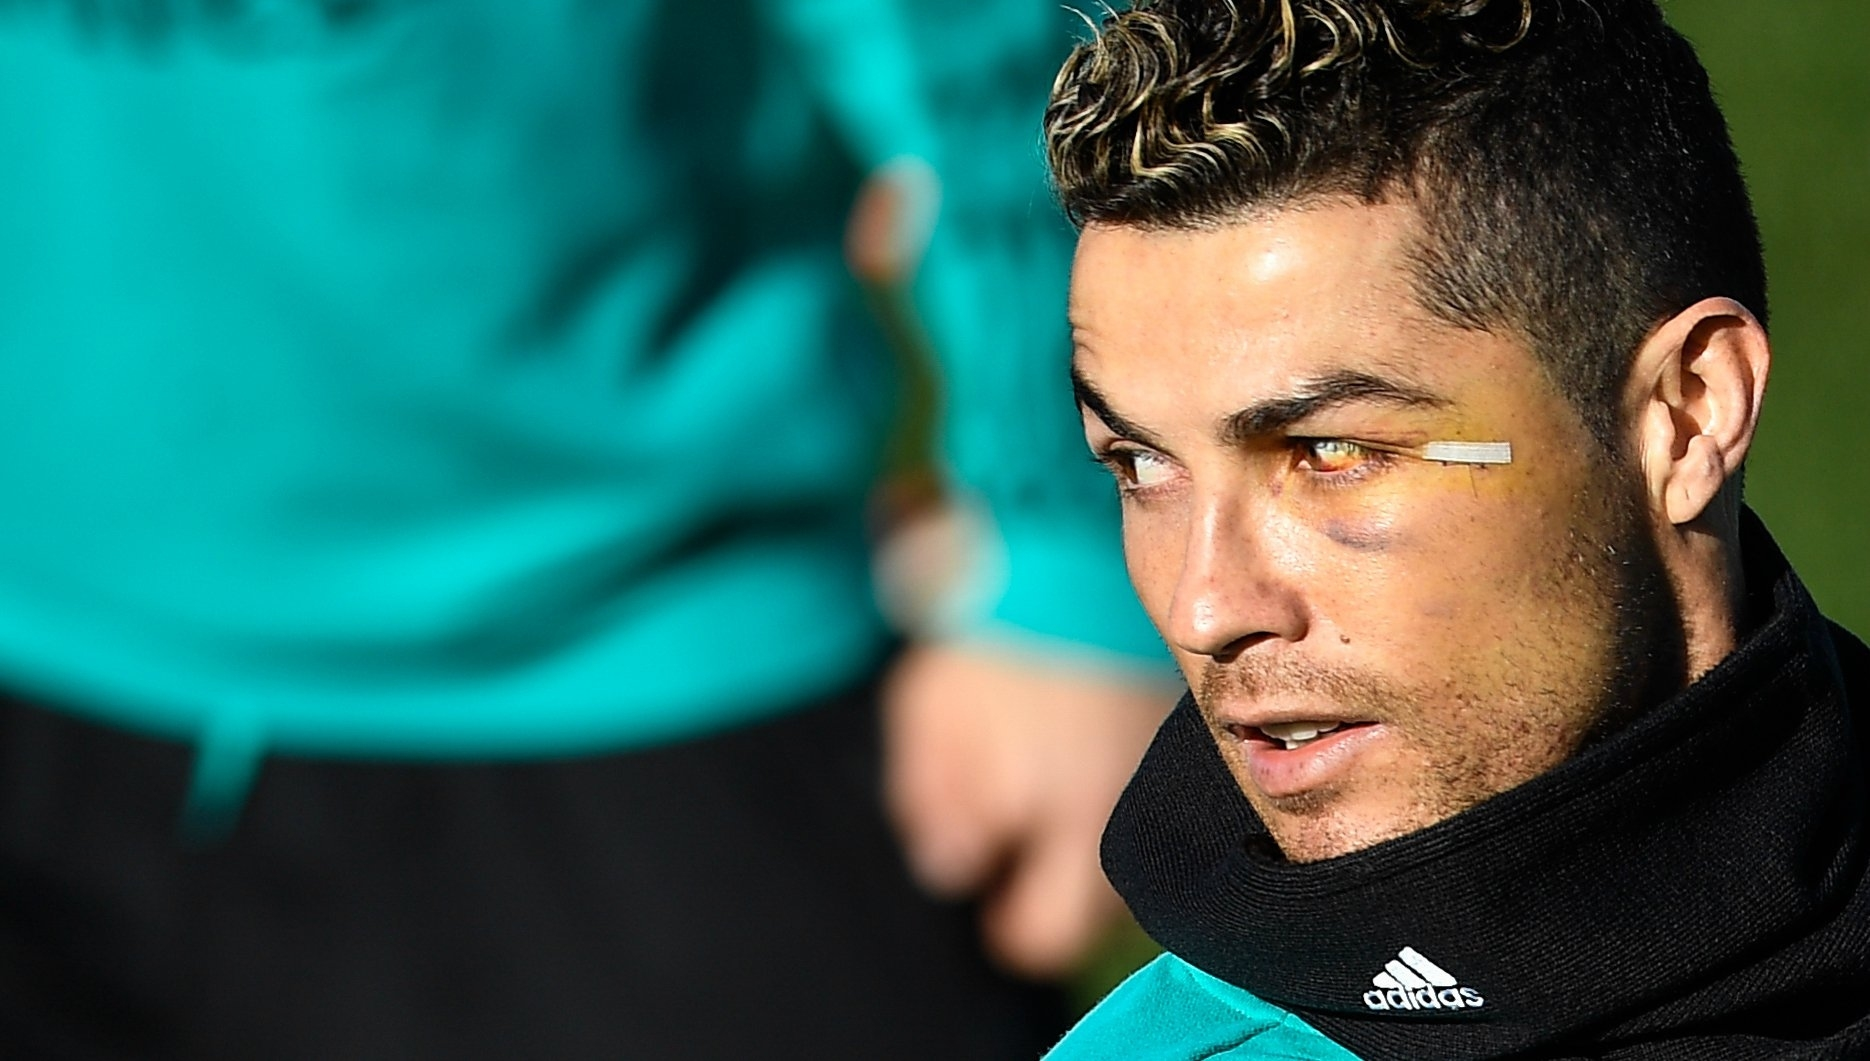 Cristiano Ronaldo Says Champions League Is Most Important Trophy For intended for Ronaldo Haircut 2018 Champions League